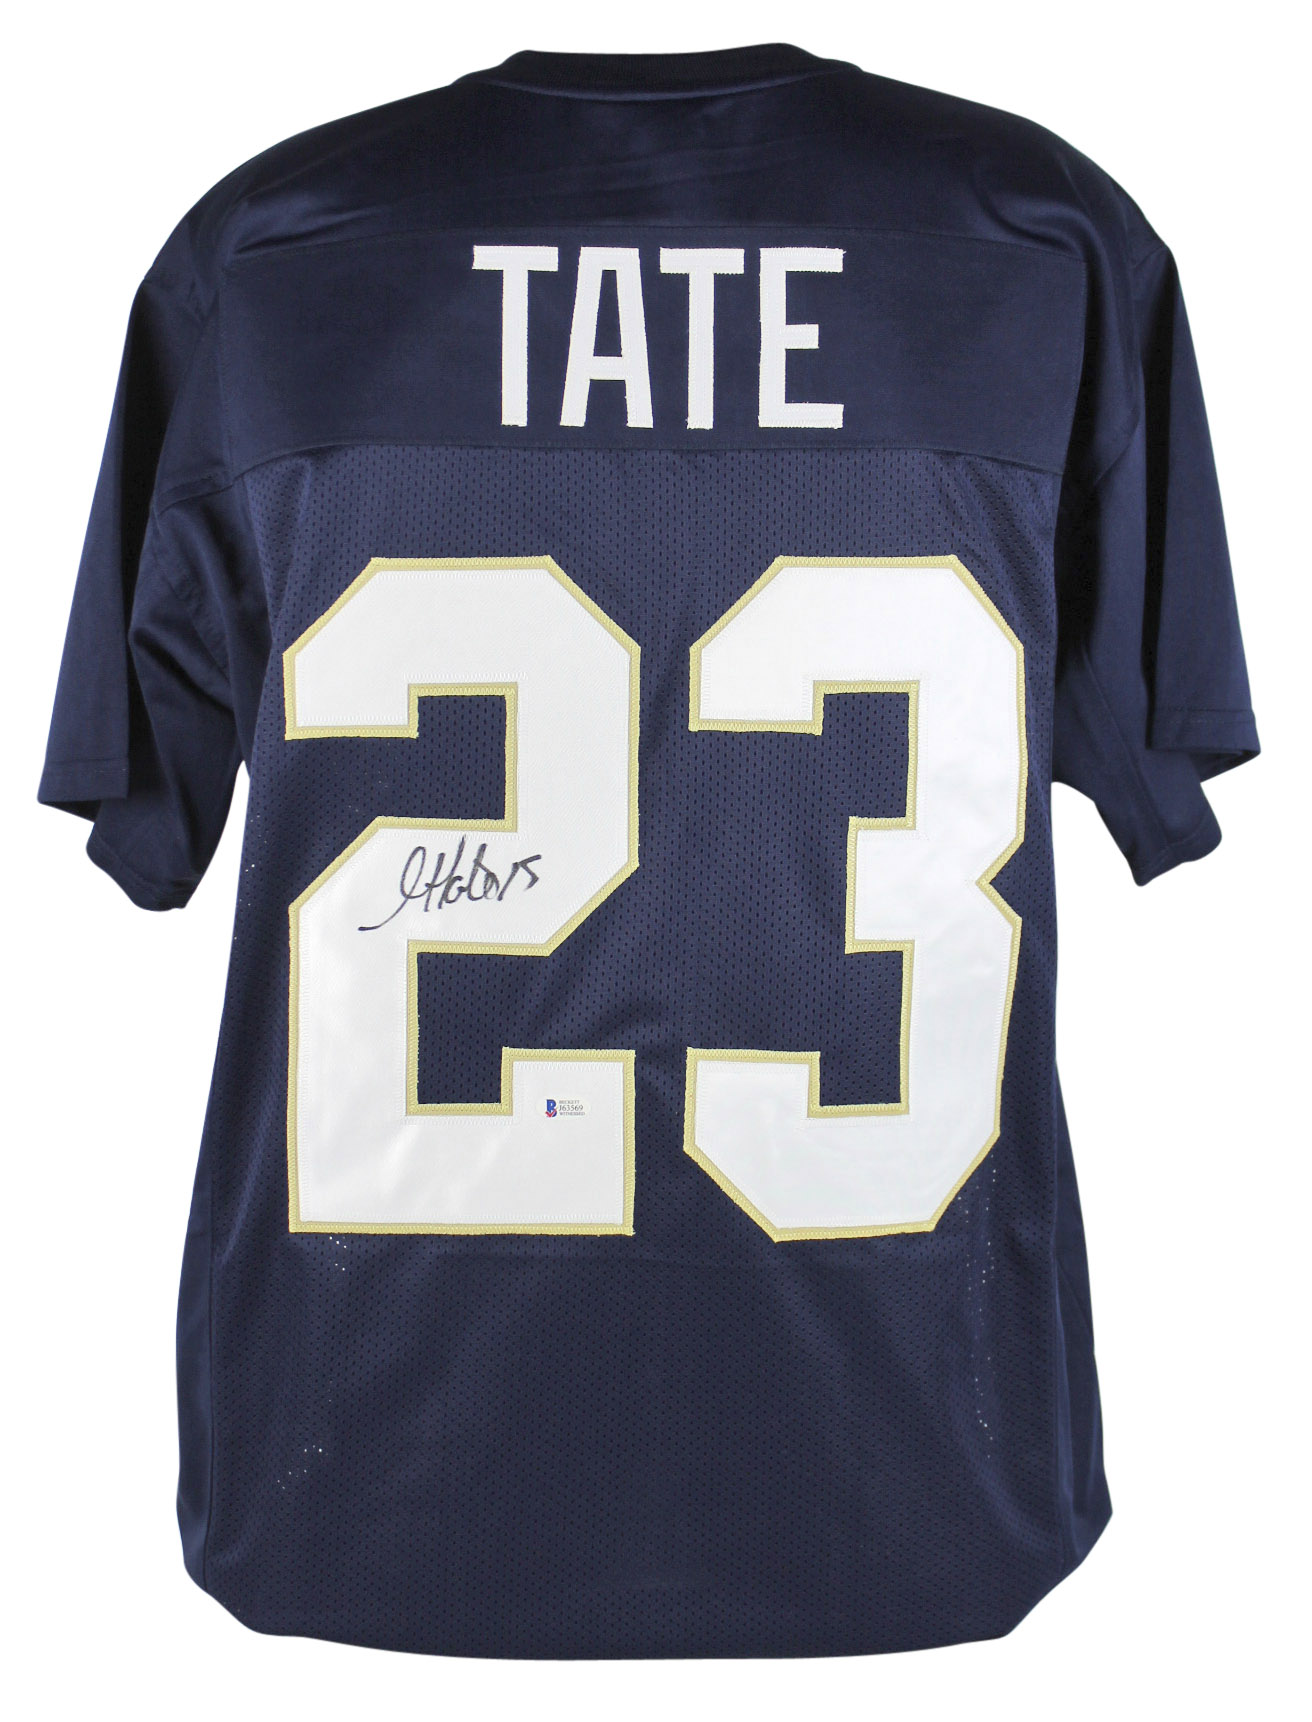 a9a4d5765  139.99 - Notre Dame Golden Tate Authentic Signed Navy Blue Jersey ...